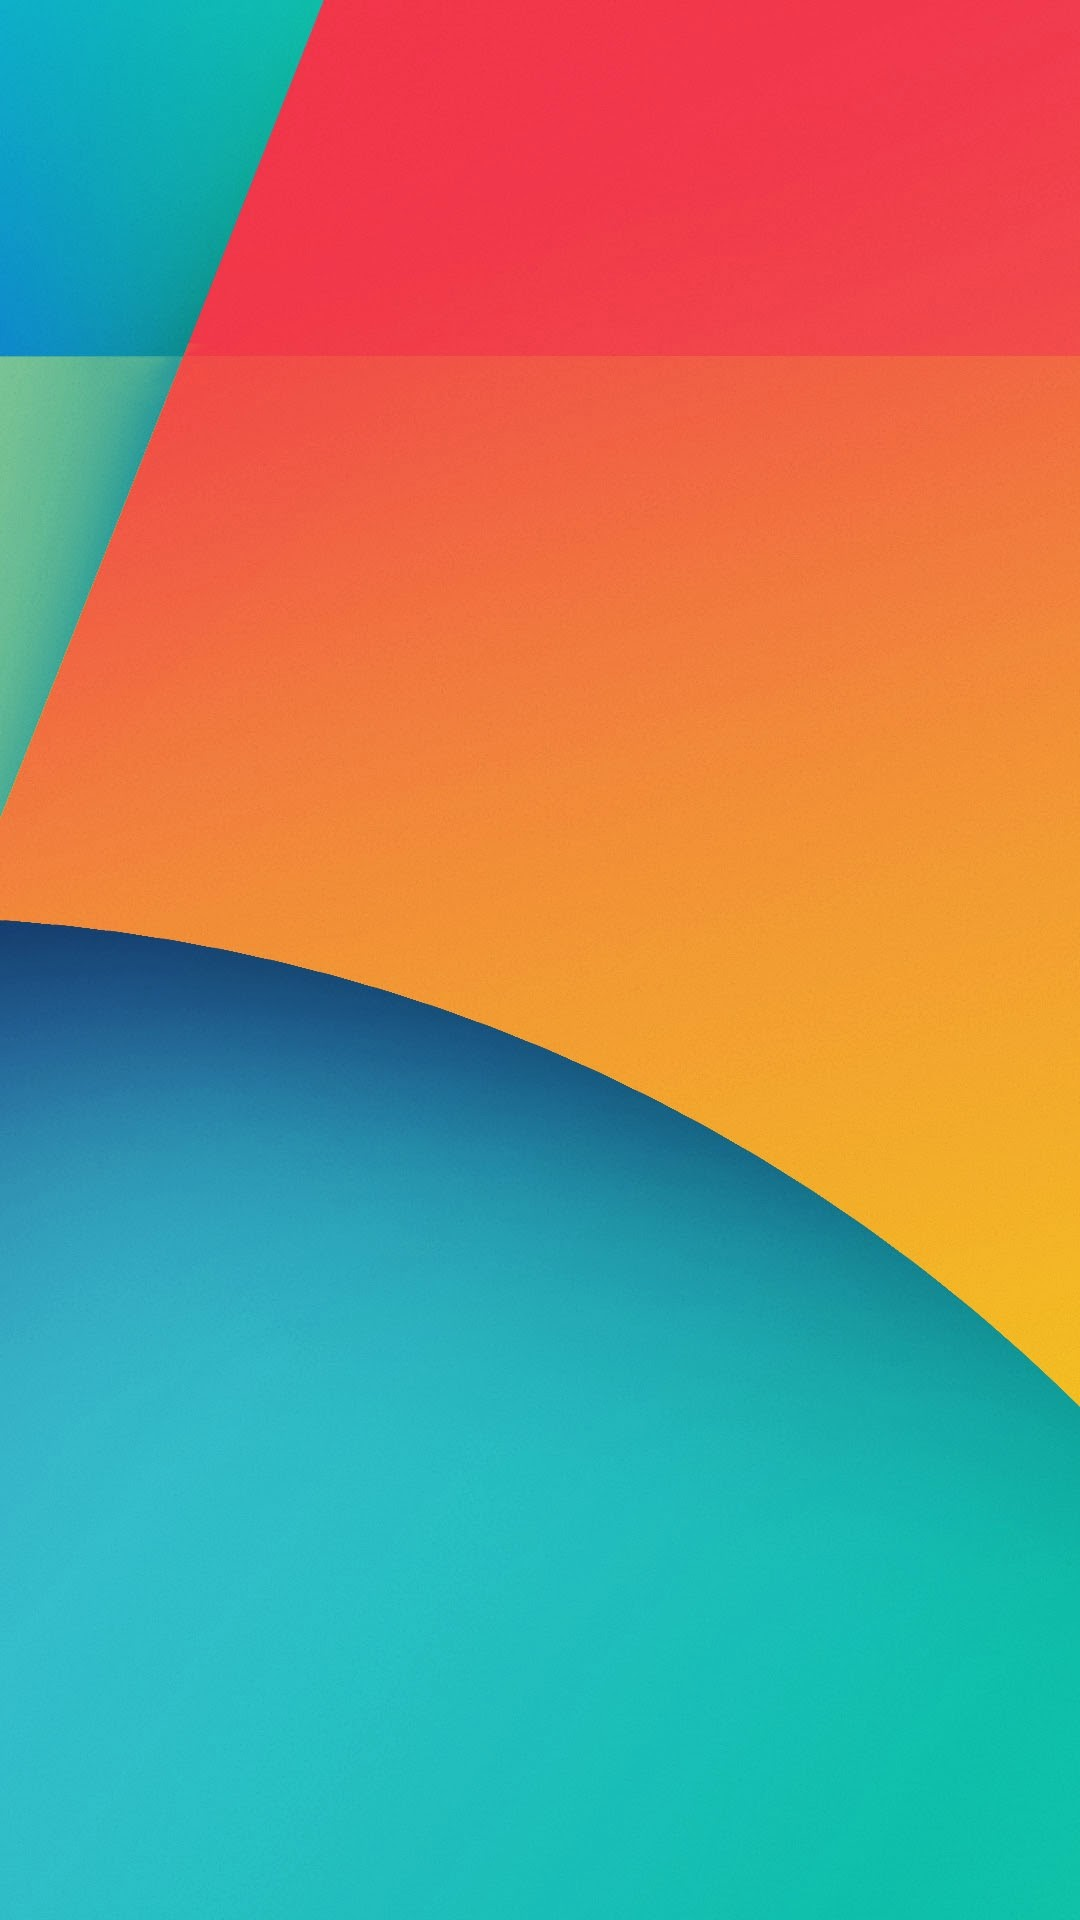 1080x1920 click here to download nexus 5 android 4 4 kitkat orange blue android wallpaper resolution 1080x1920 pixel